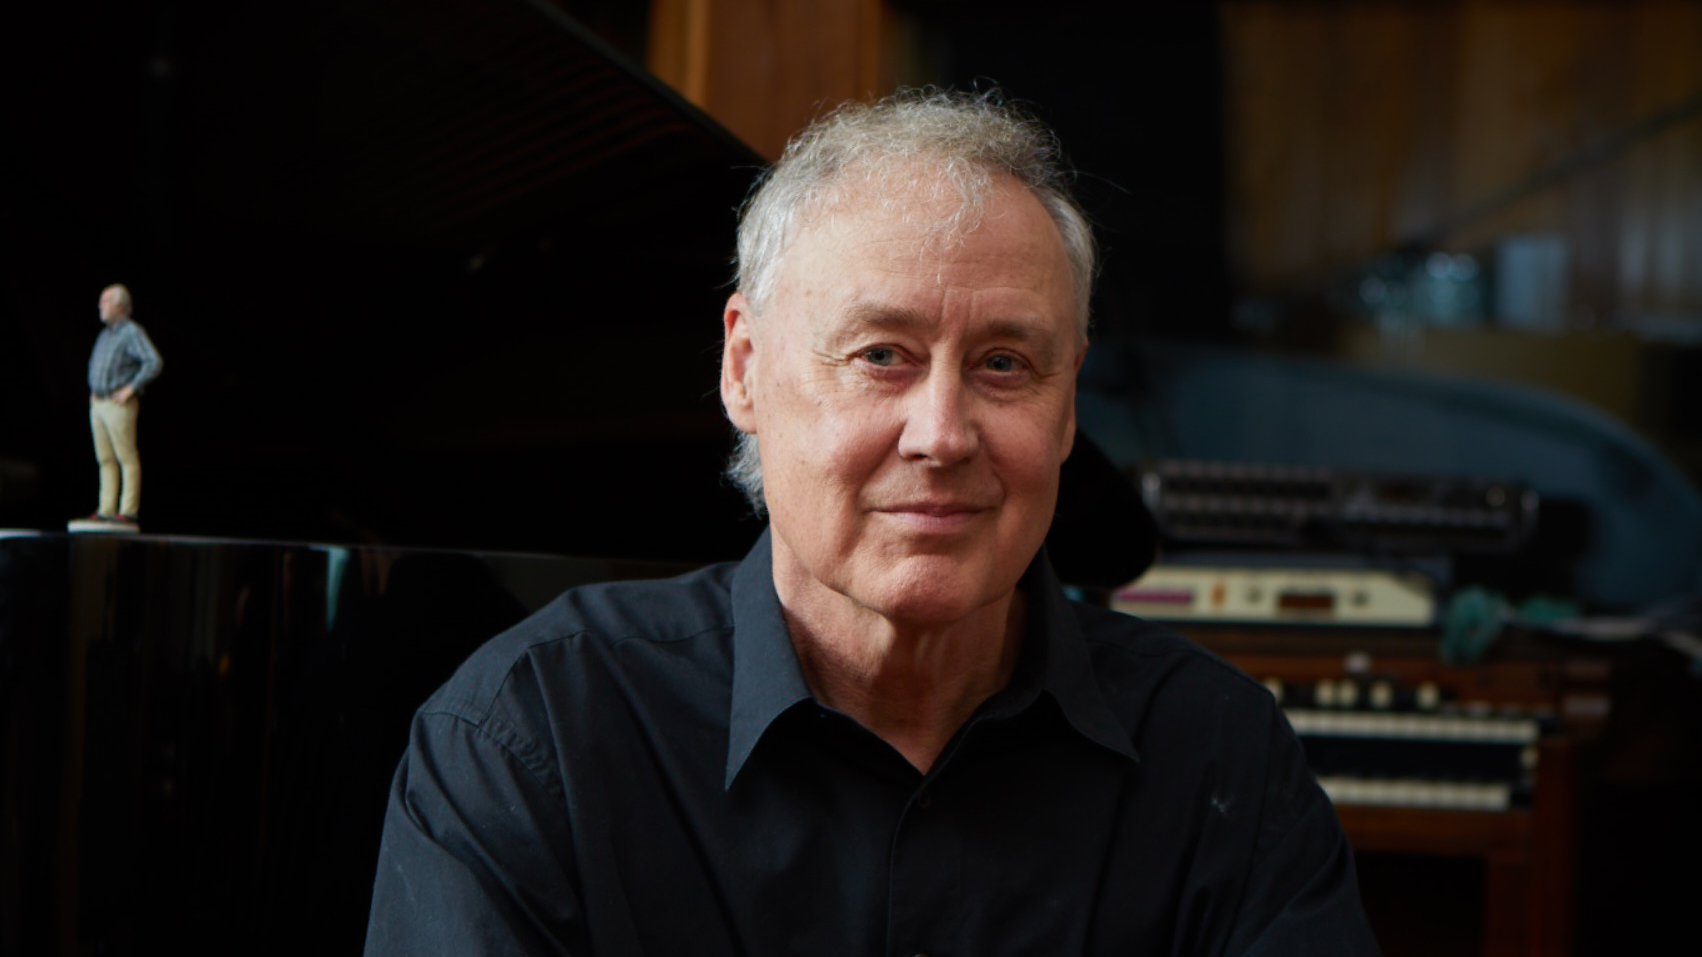 3 Decades In, Bruce Hornsby's Style Is Constantly Evolving